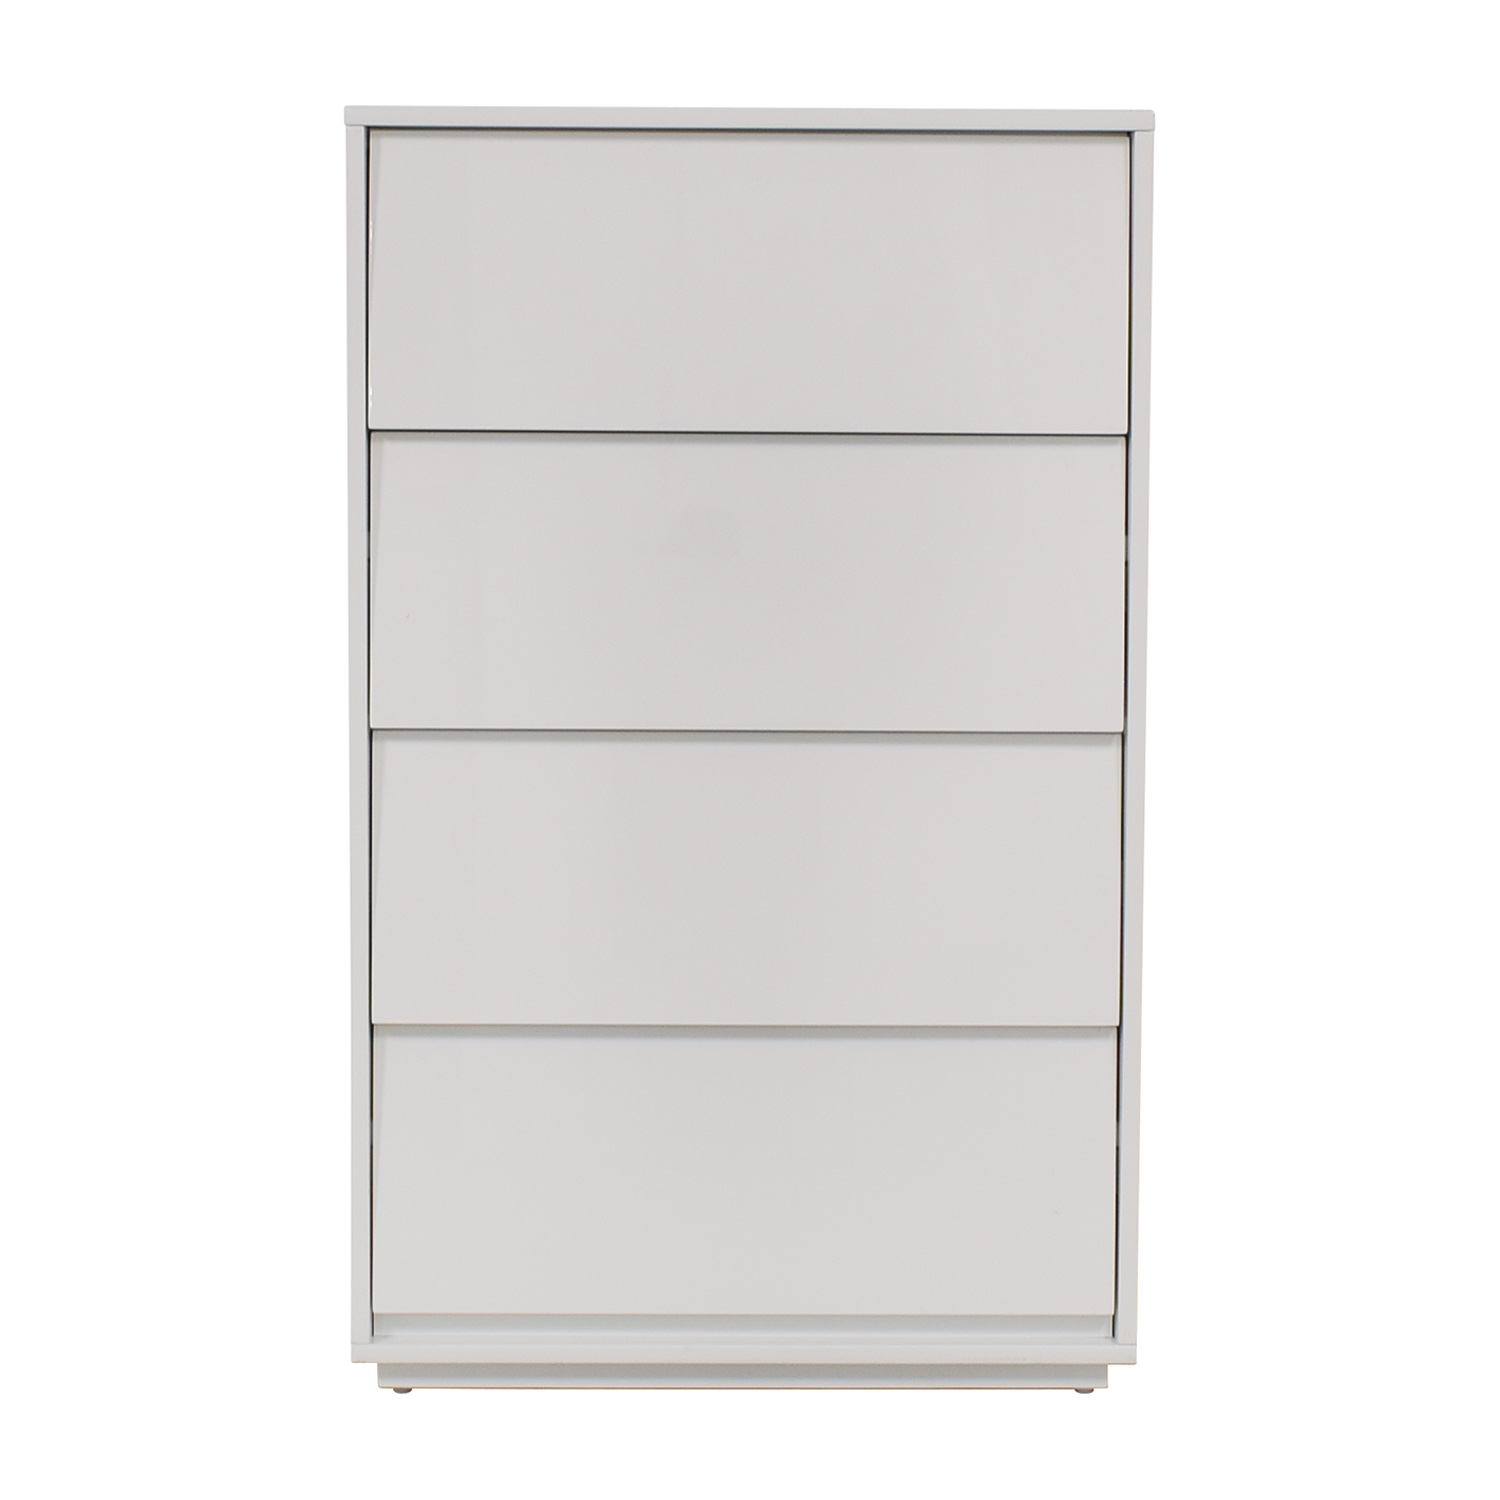 CB2 CB2 Gallery White Four Drawer Tall Chest used